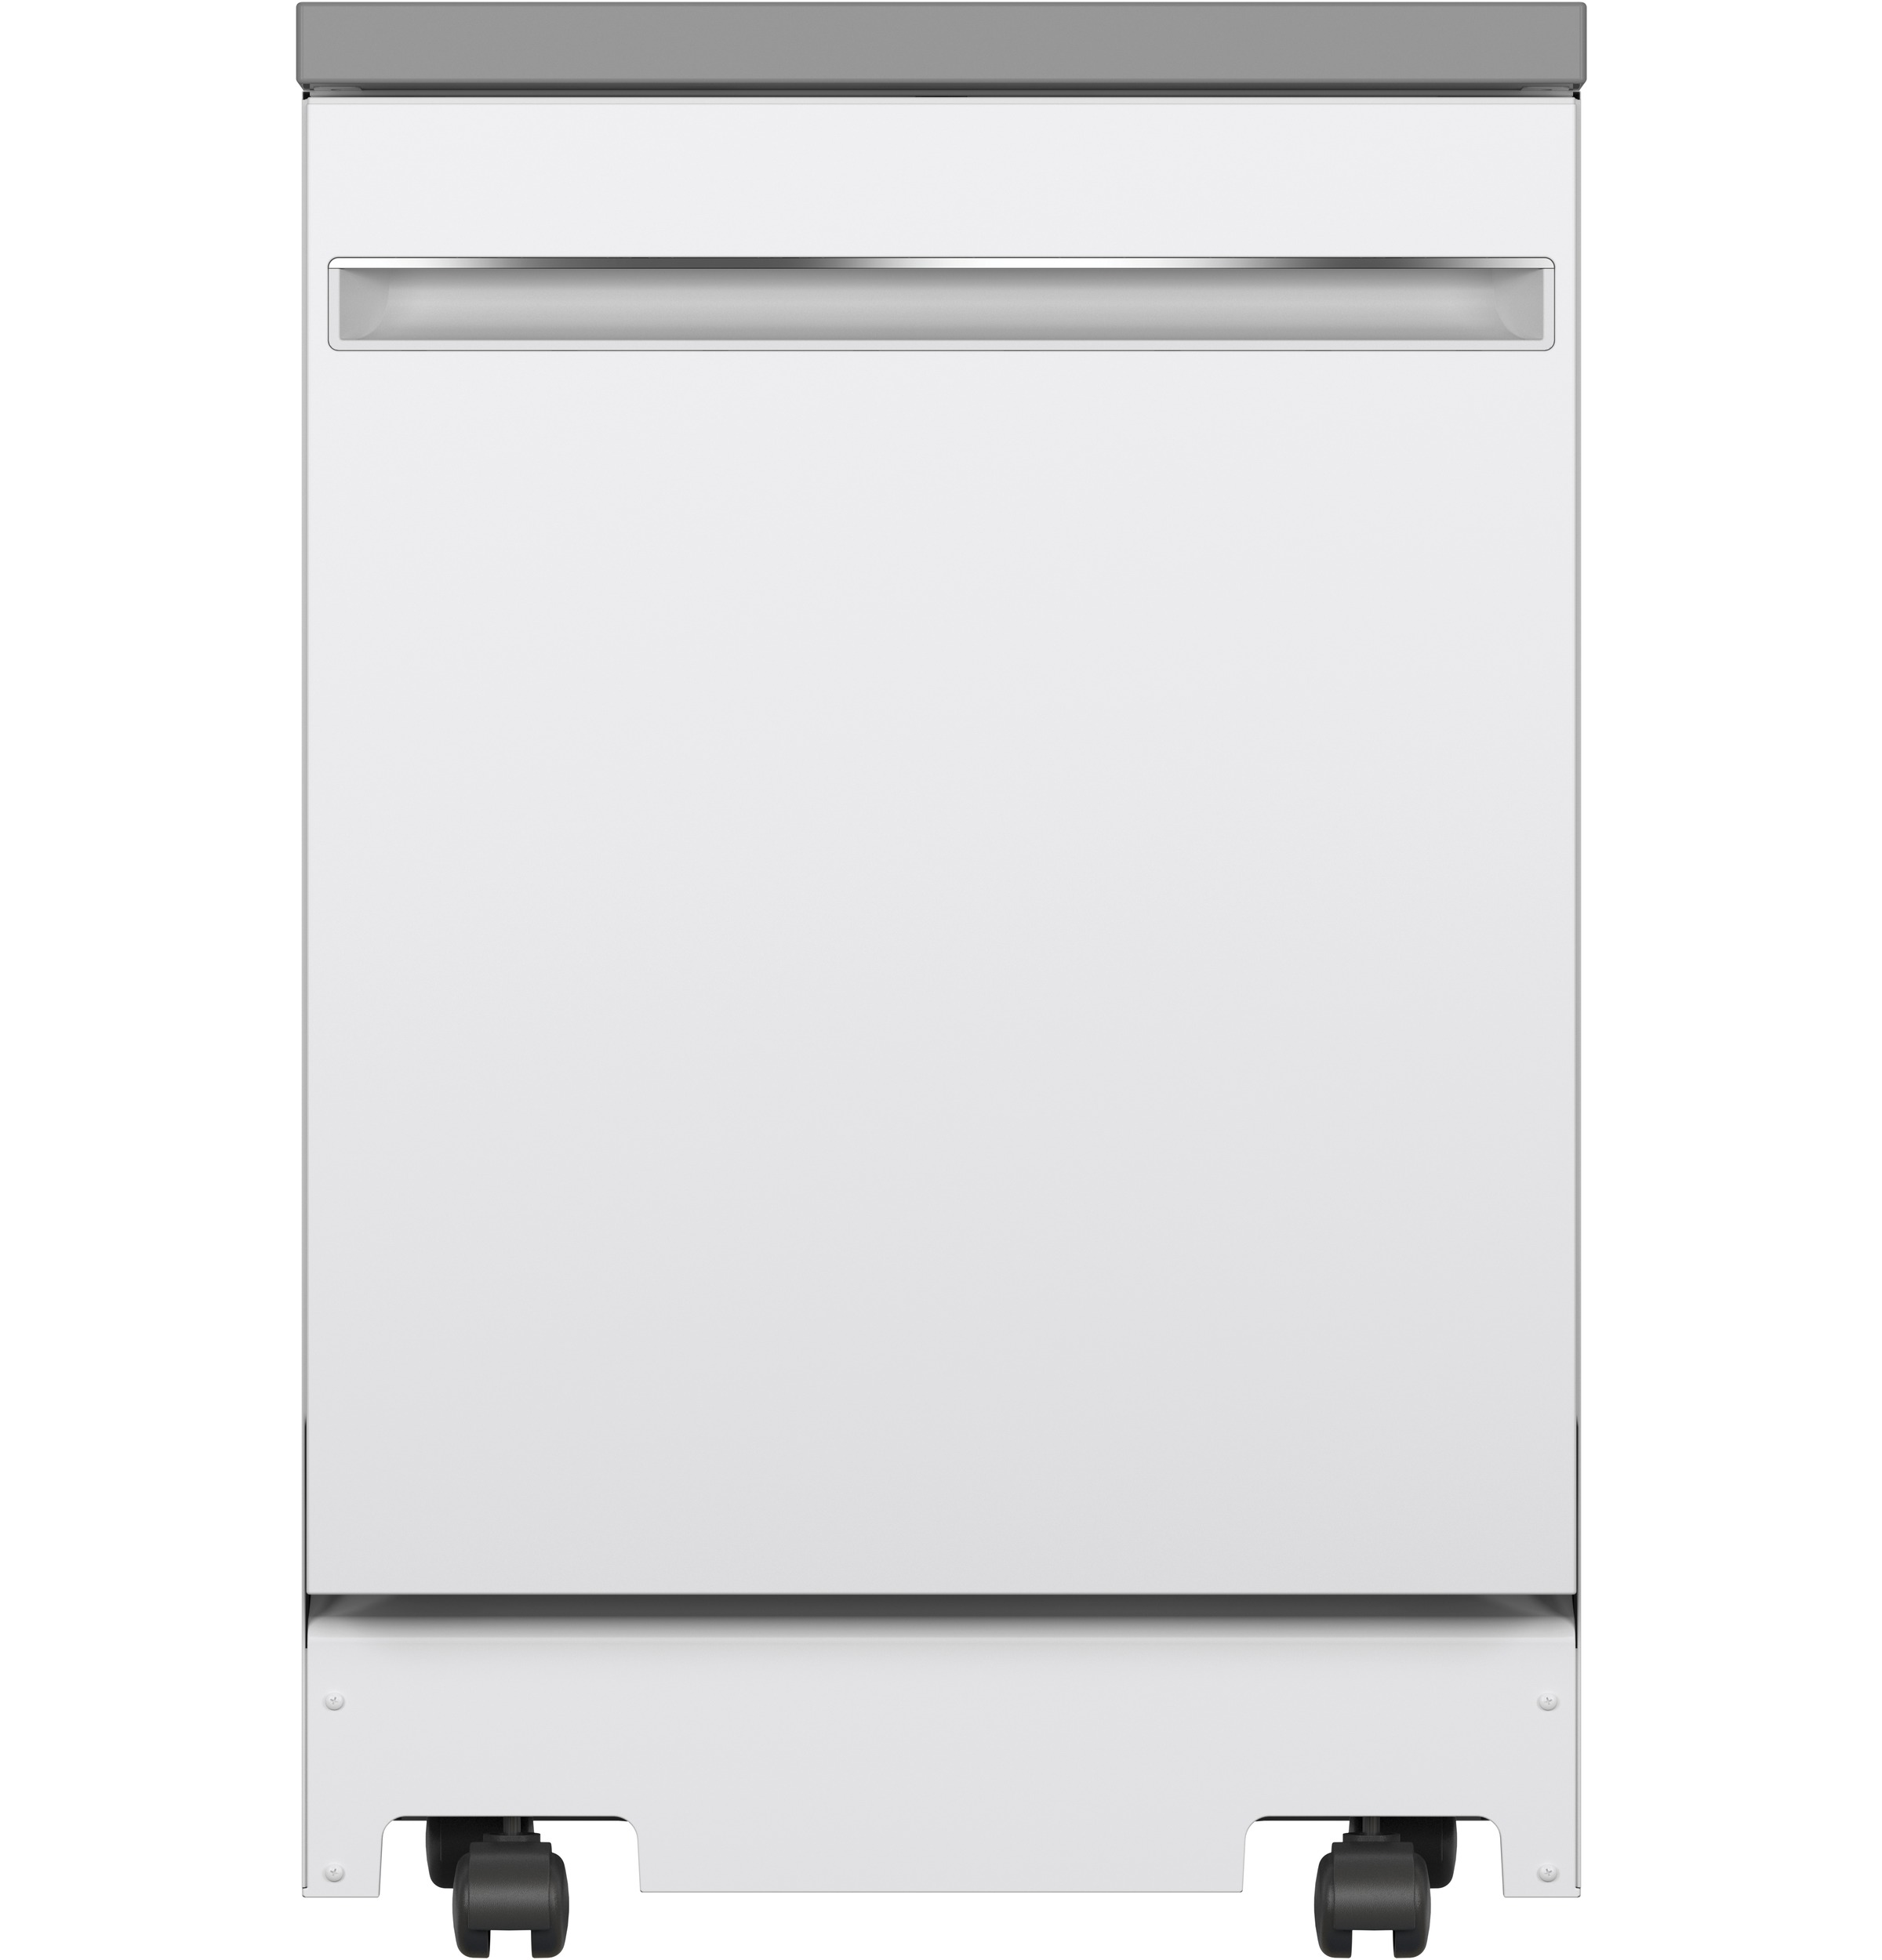 GE Dishwasher in White color showcased by Corbeil Electro Store